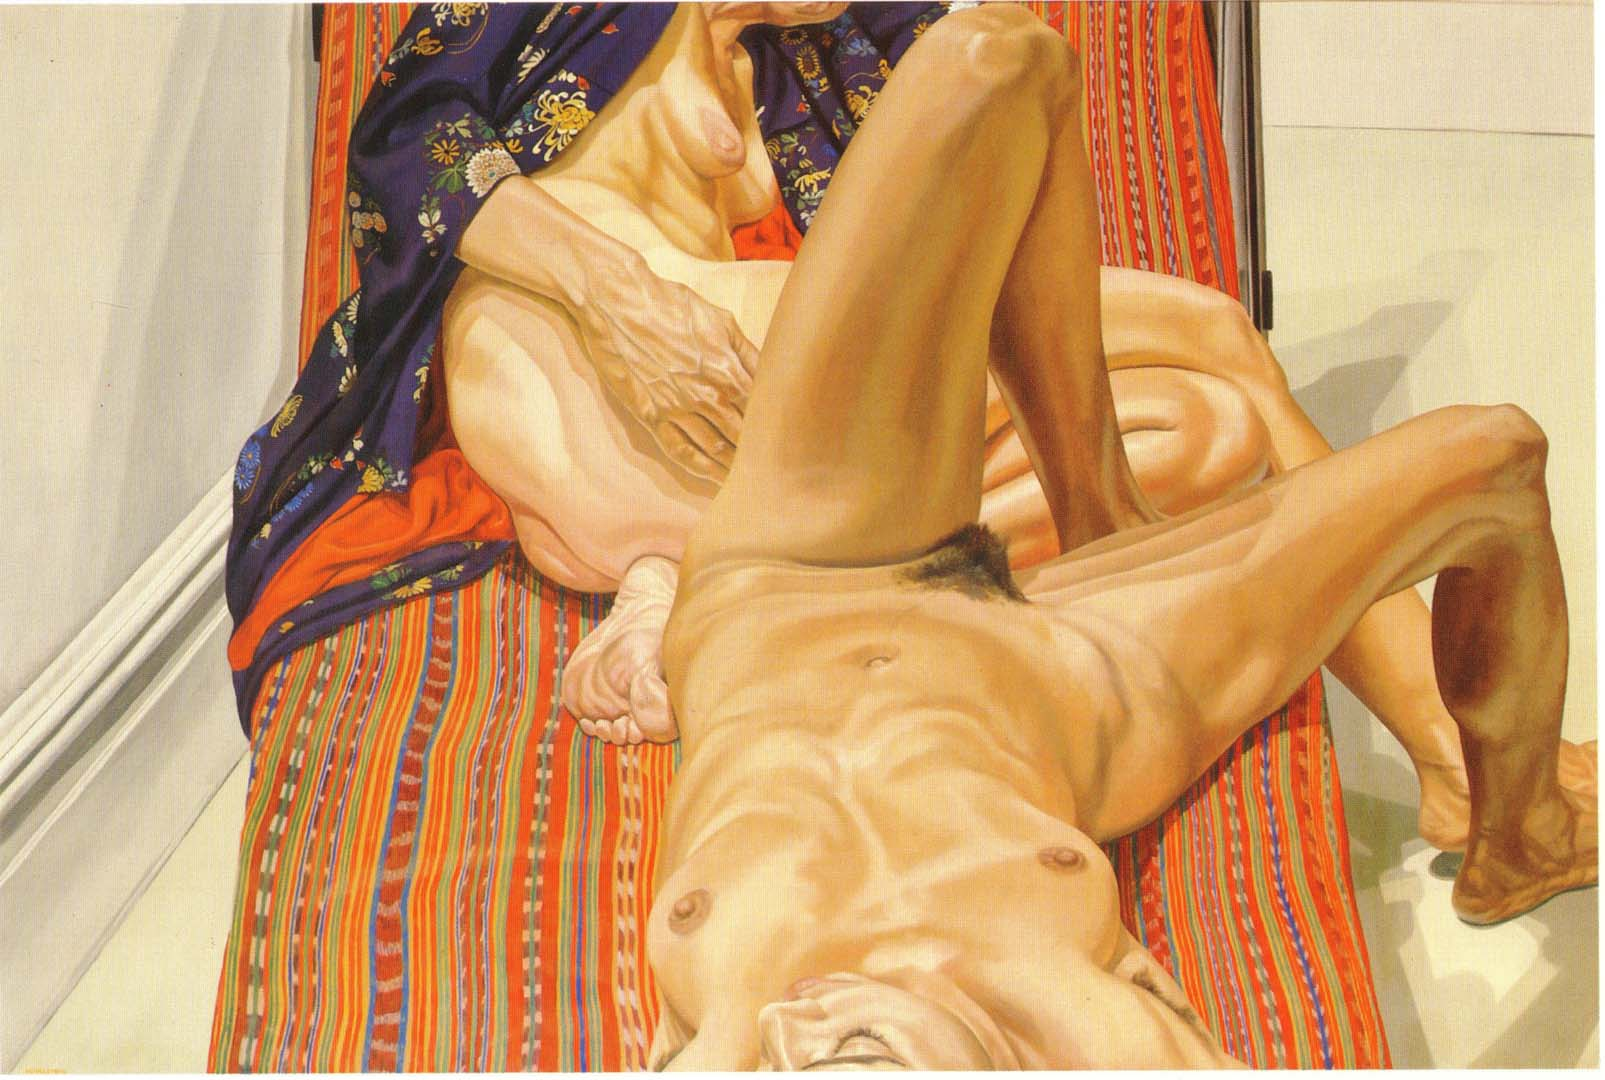 1980 Two Female Models on Peruvian Drape Oil on Canvas 48 x 72